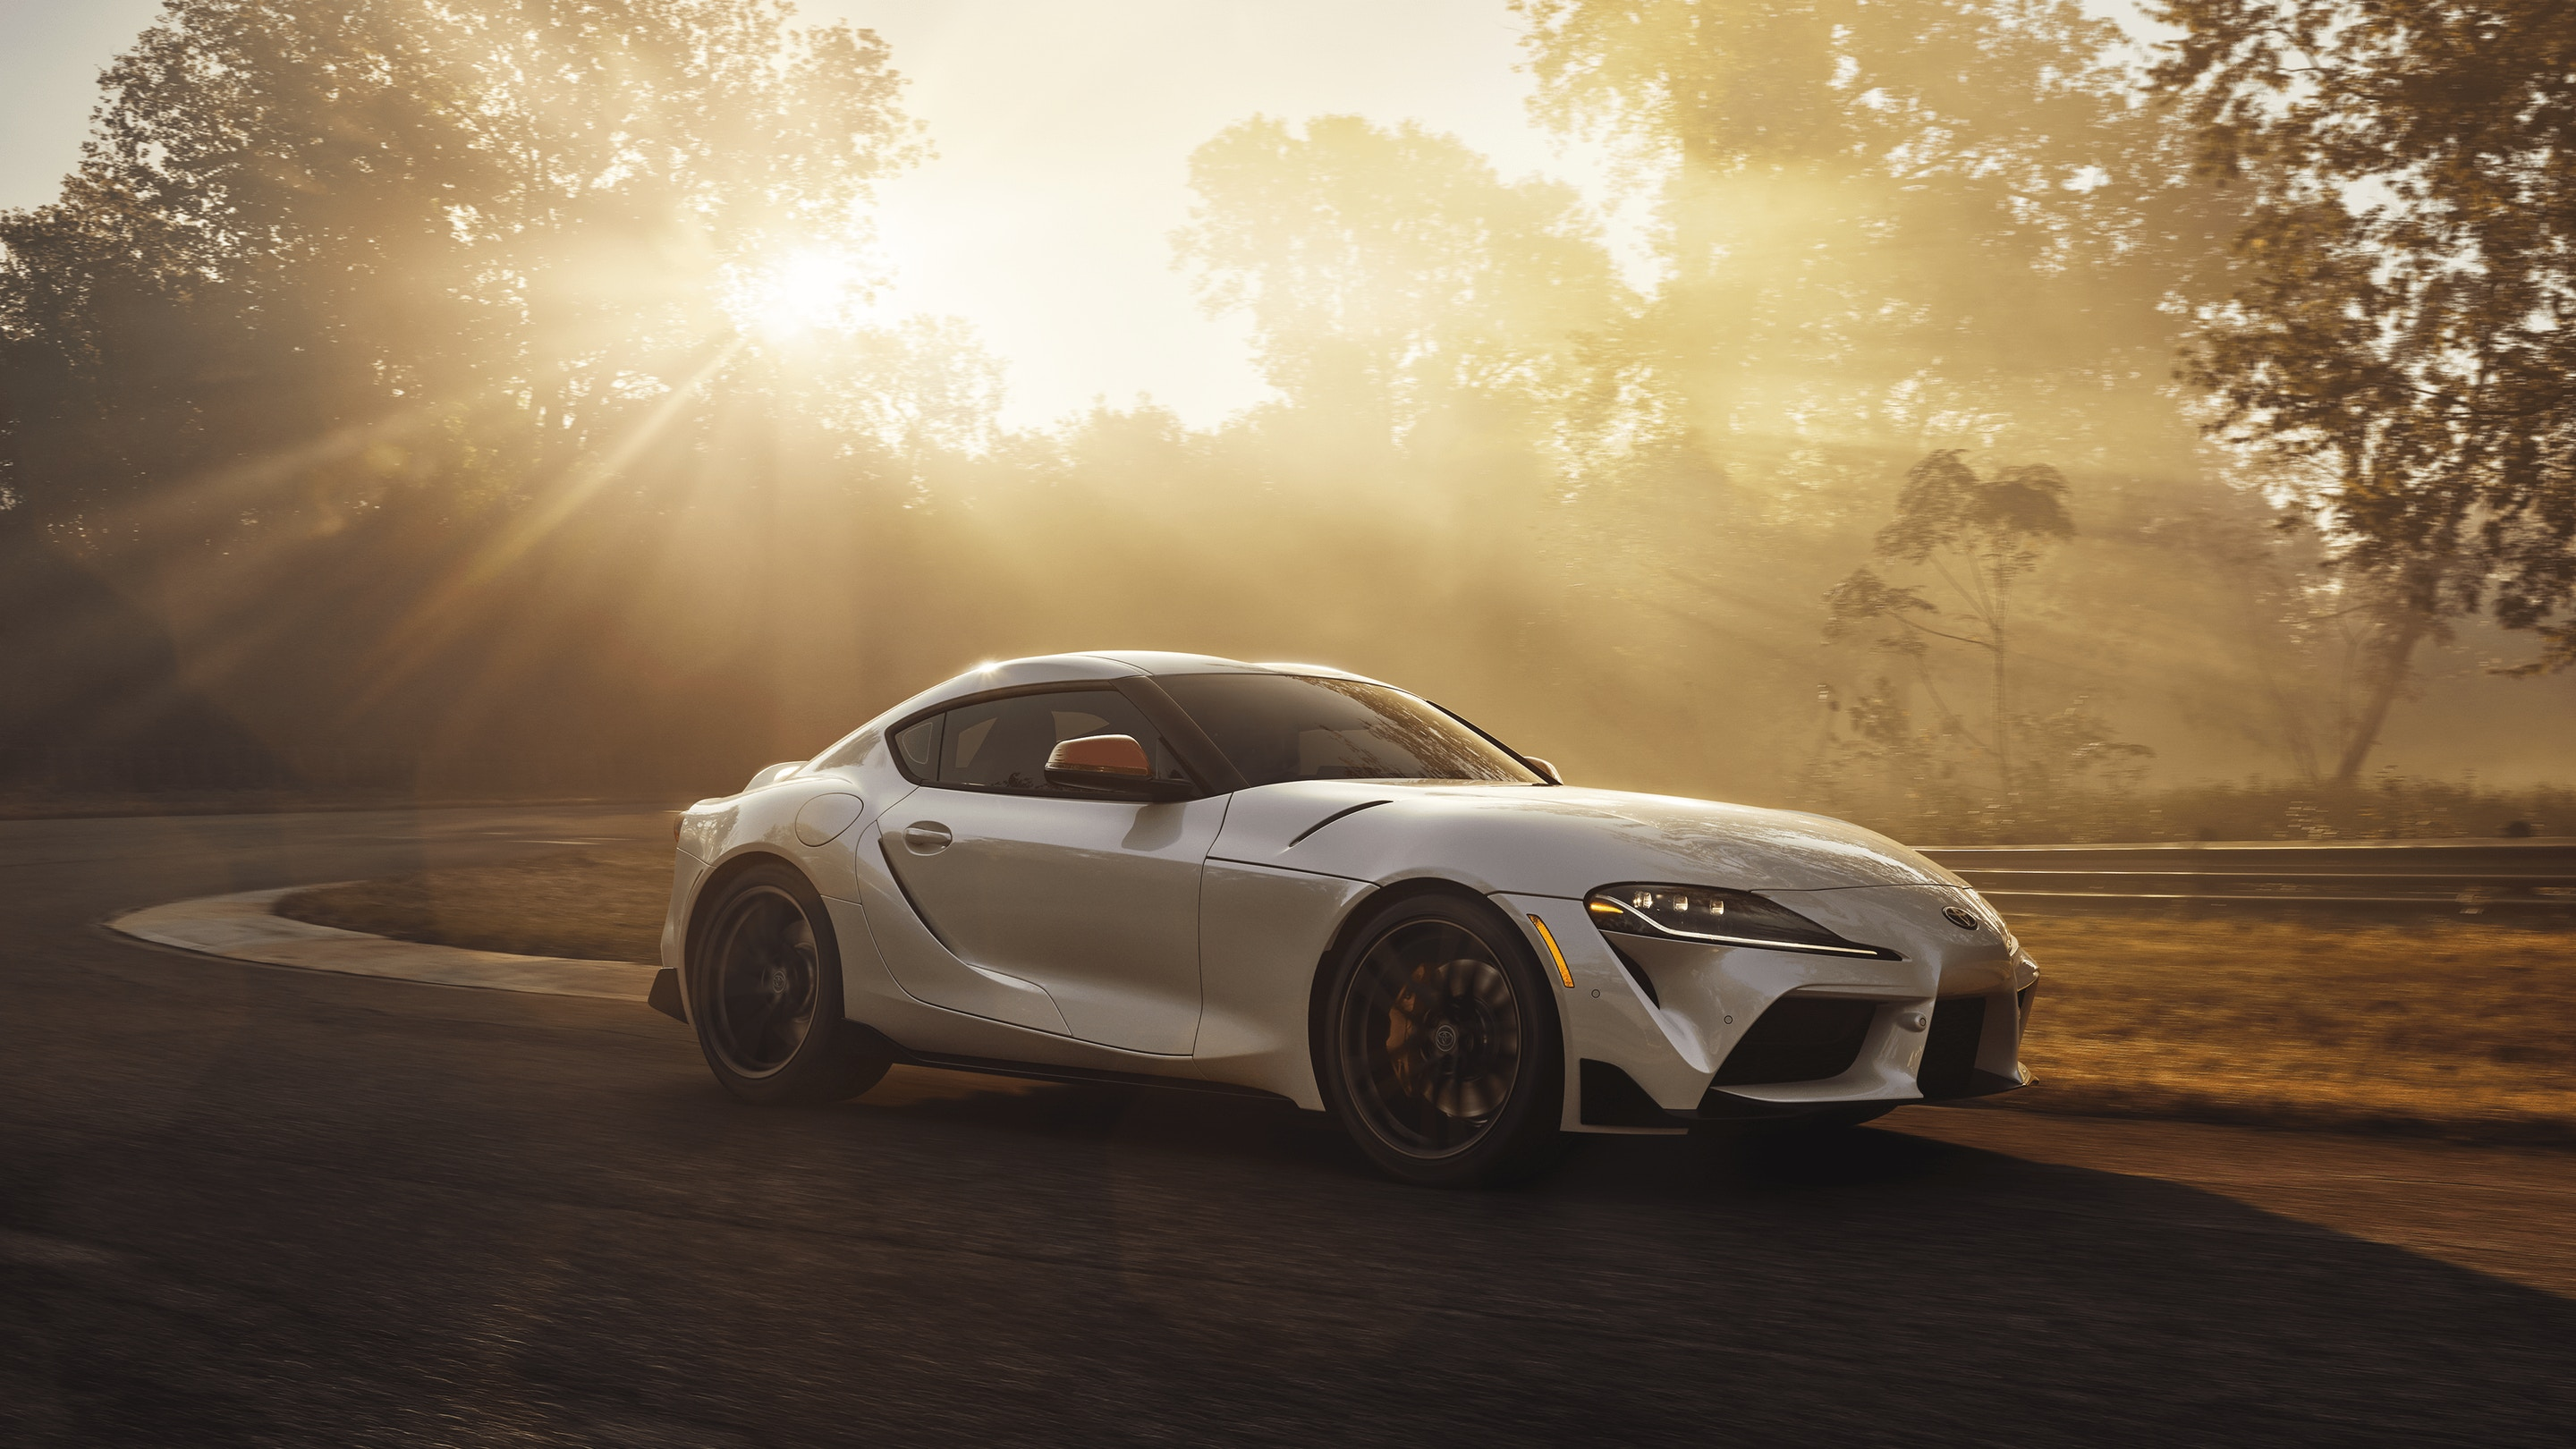 2020 Toyota Supra for Sale near Queens, NY